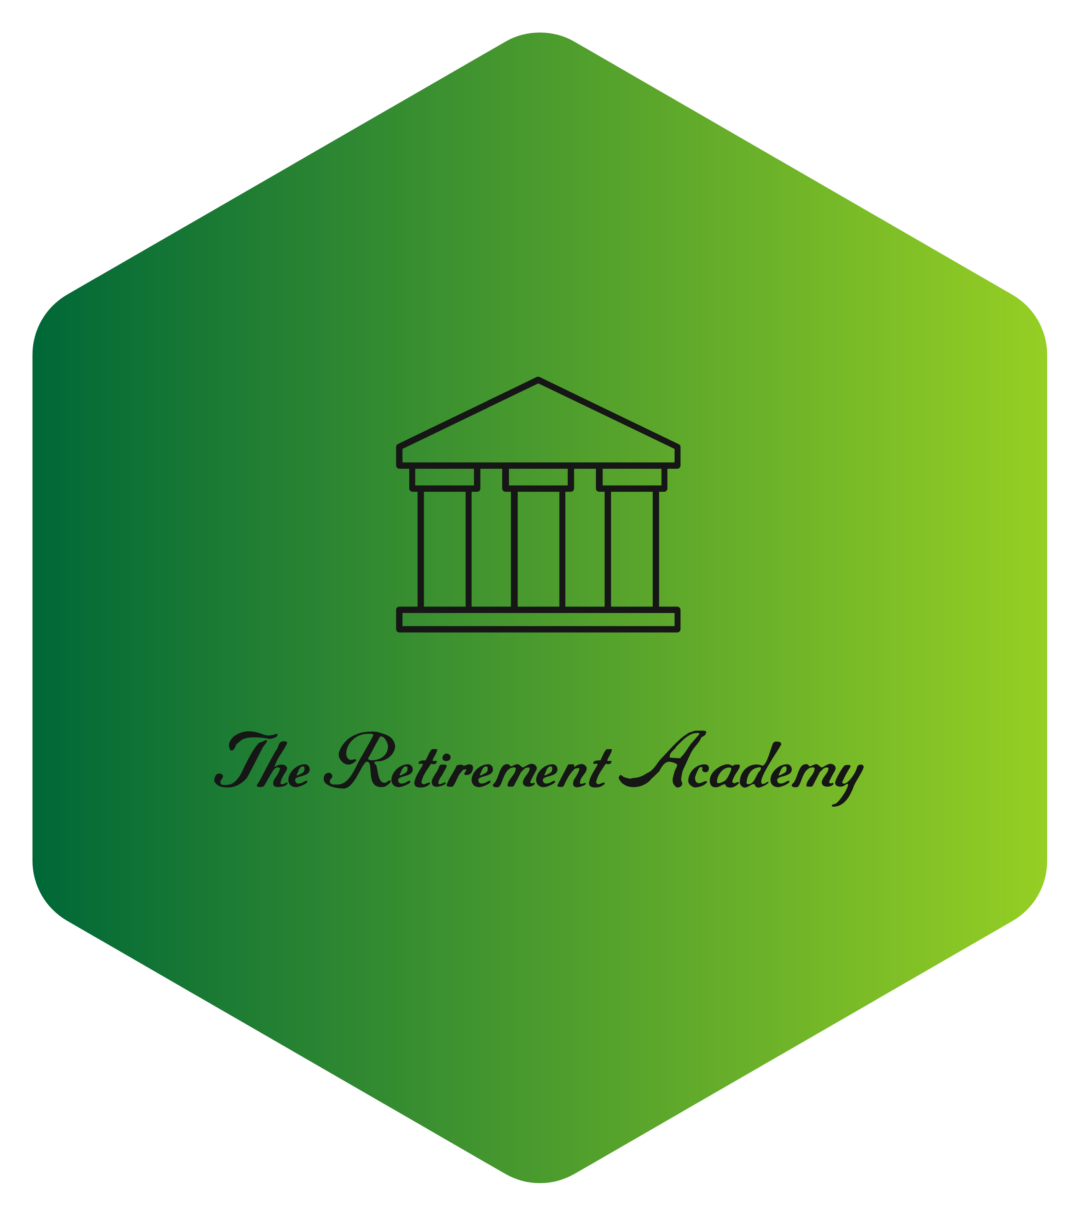 Retirement Academy Logo